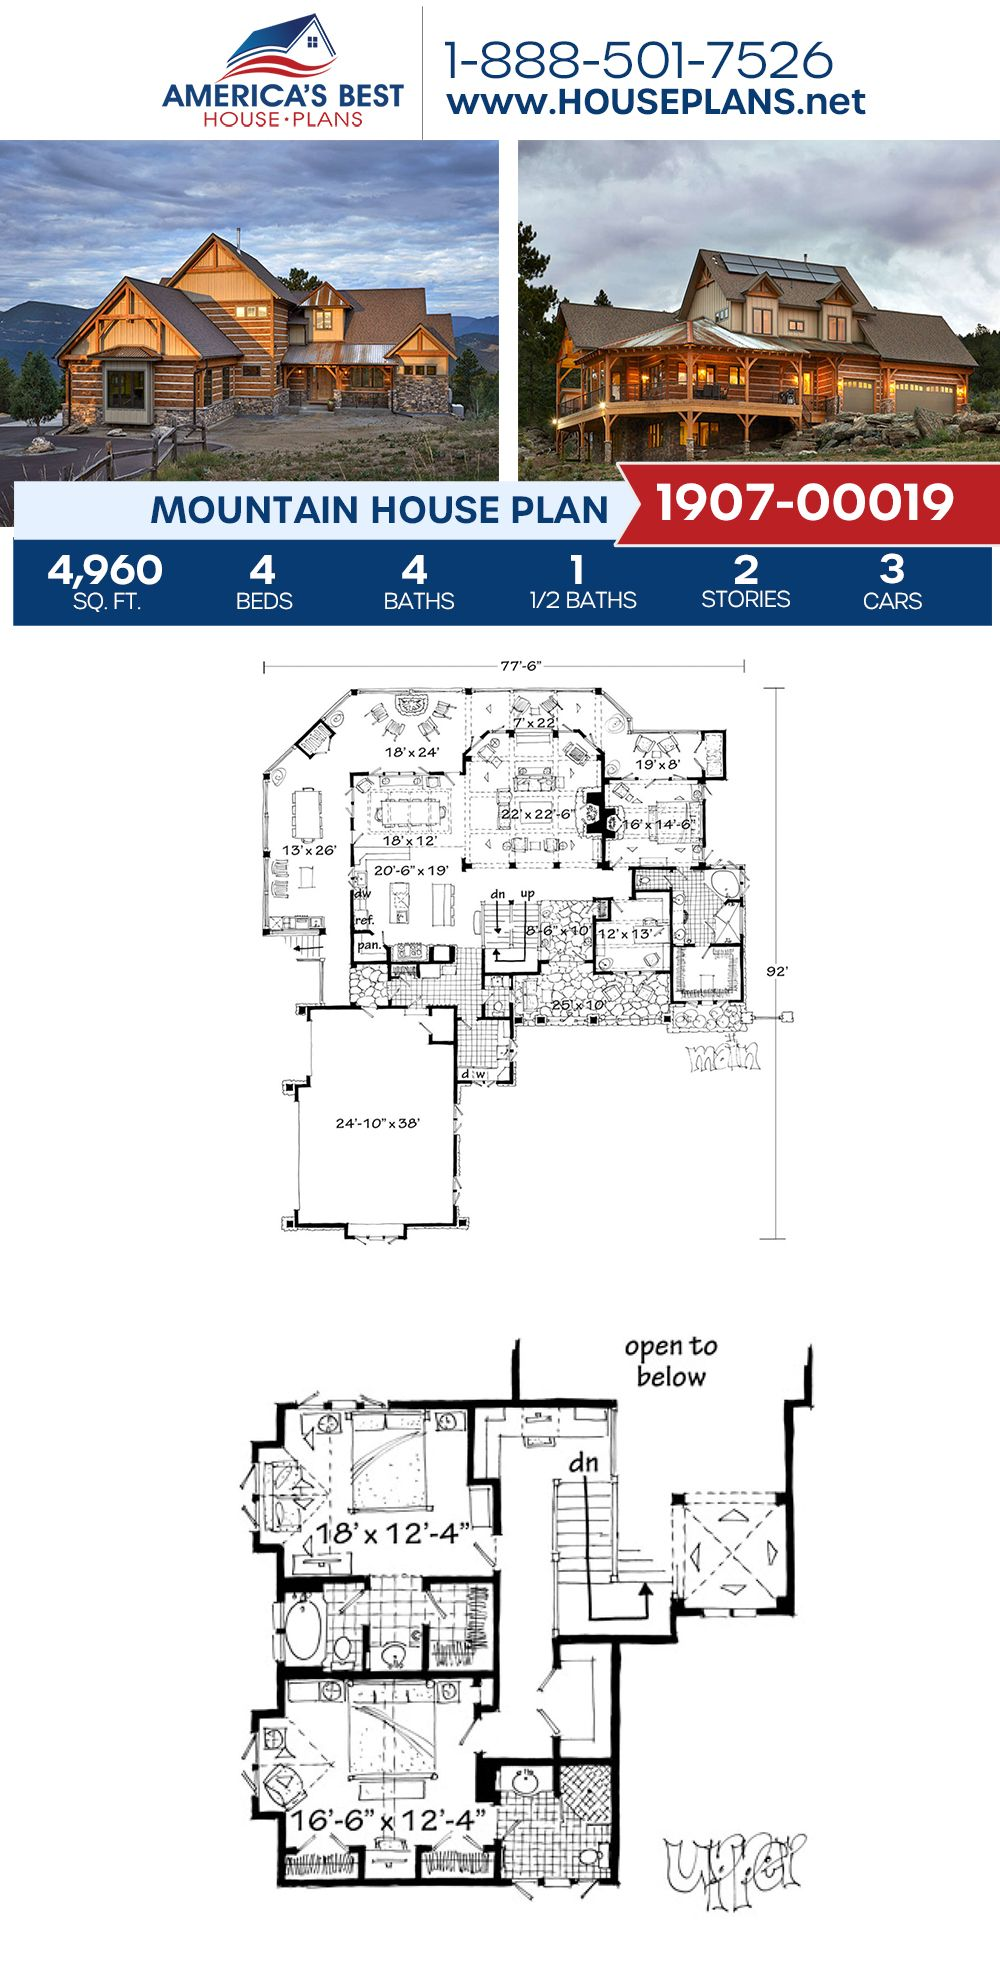 House Plan 1907 00019 Mountain Plan 4 960 Square Feet 4 Bedrooms 4 5 Bathrooms Mountain House Plans Mansion Plans Floor Plans